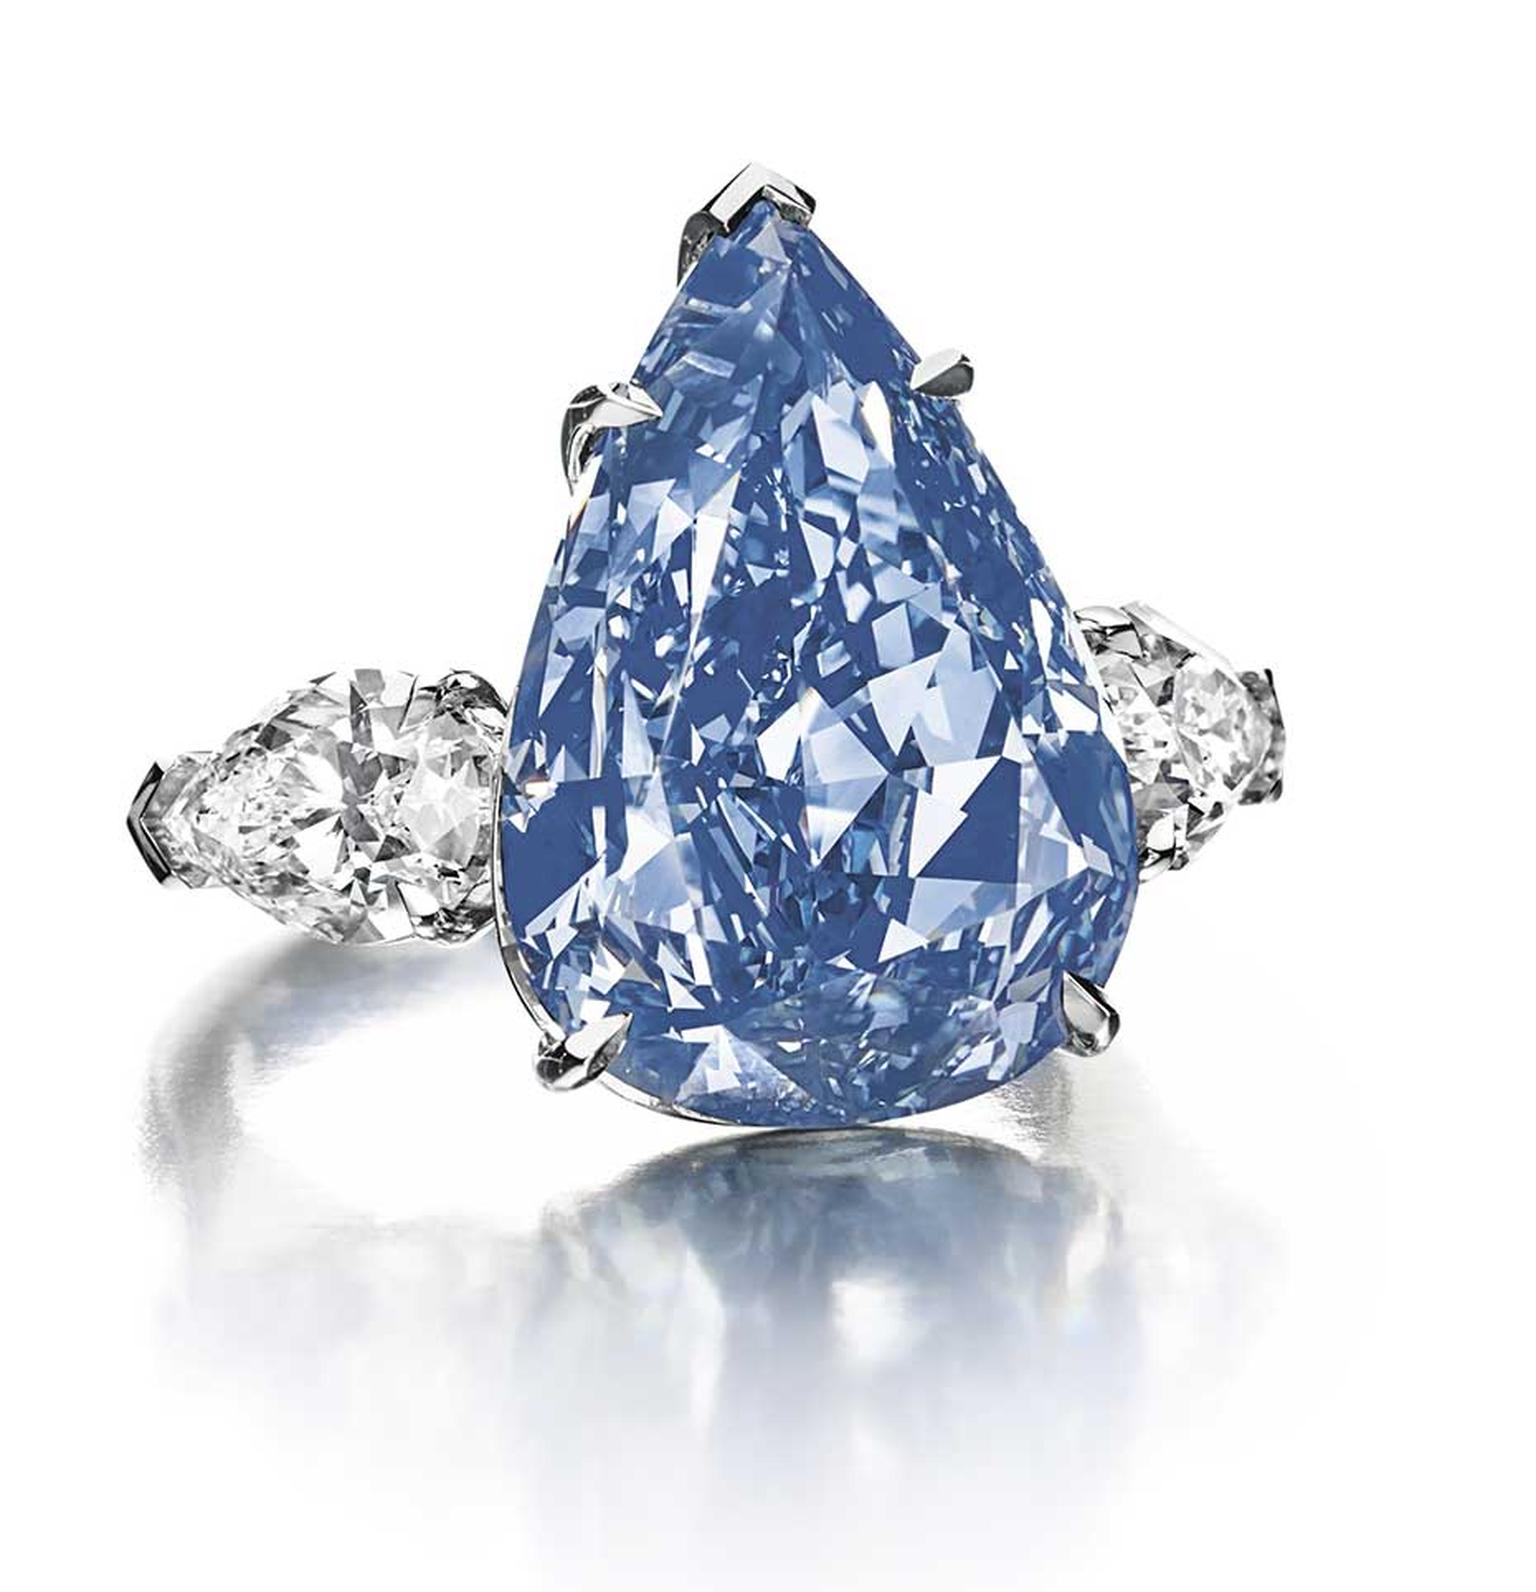 The star at Christie's sale of Magnificent Jewels in Geneva on 14 May 2014 was the 13.22ct 'The Blue' diamond. It sold for close to $23.8 million, which is nearly $1,800 per carat - a new world record price per carat for a blue diamond.